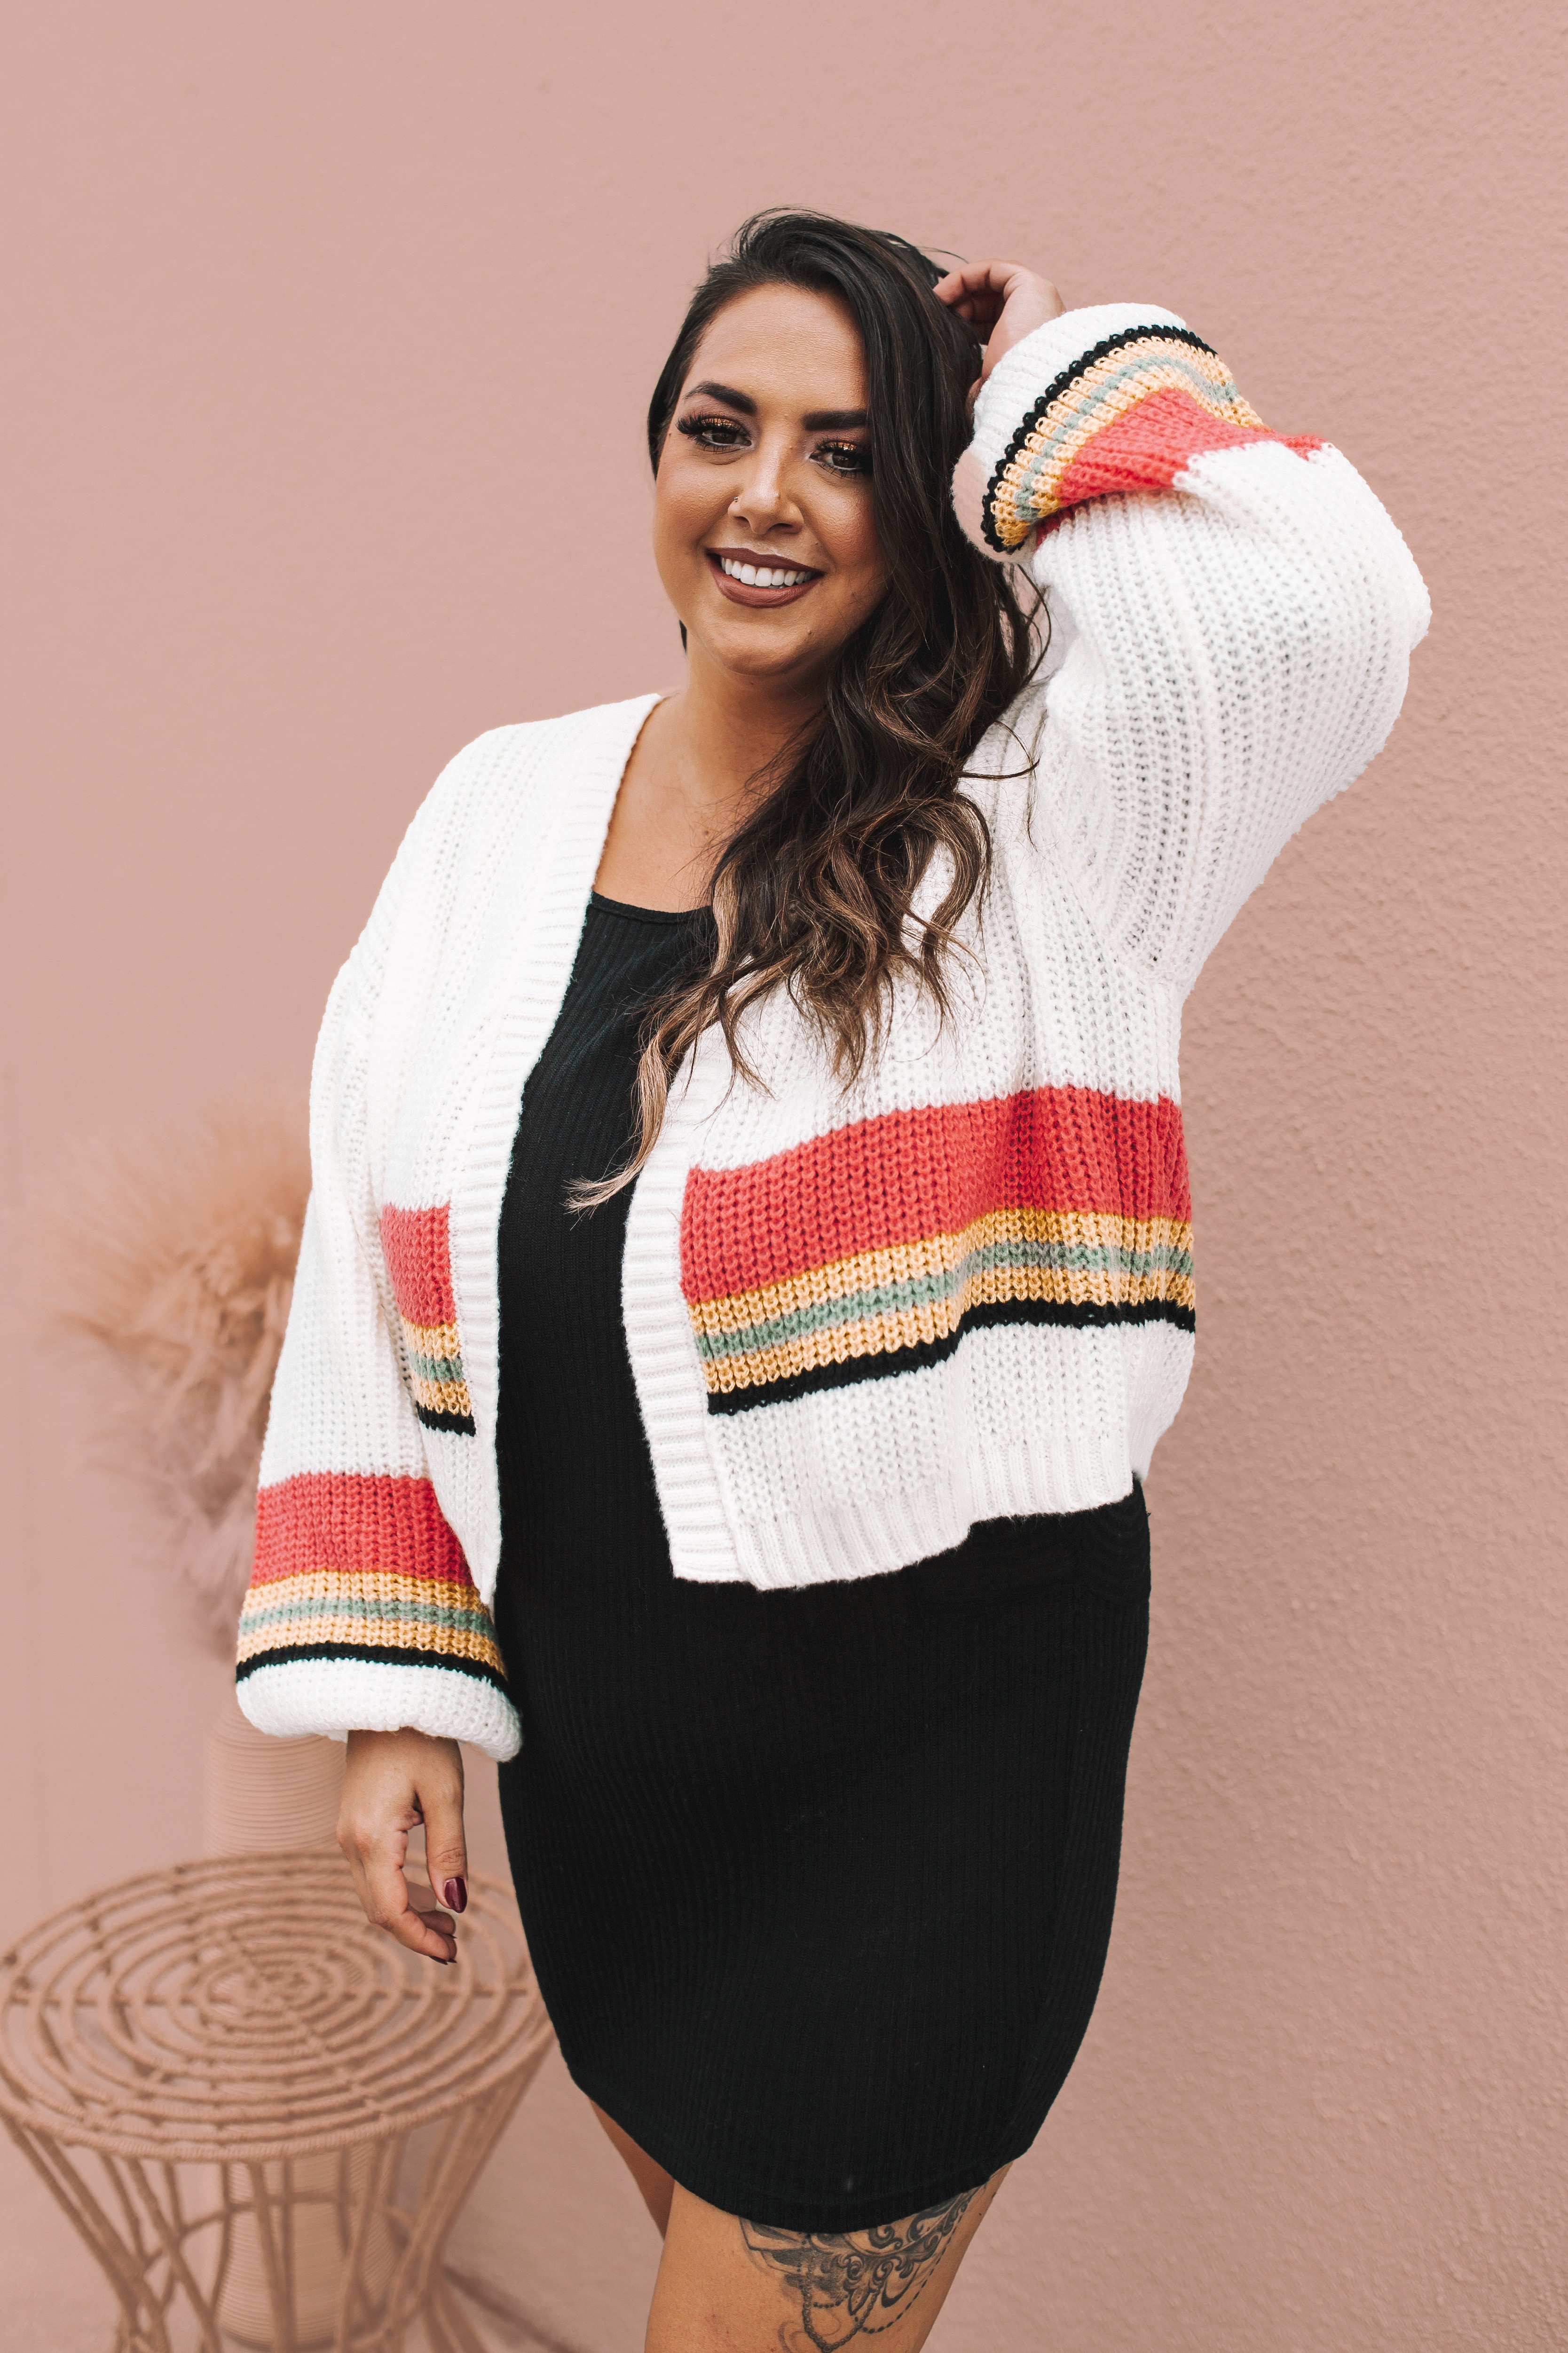 CREAM COLORED CHUNKY KNIT CARDIGAN WITH BUBBLE SLEEVES. FEATURING PINK, MUSTARD, GREY AND BLACK STRIPES. 100% POLYESTER. AMANDA IS 5'7 SIZE 2, WEARING A SMALL. GABBY IS SIZE 10/12 WEARING A LARGE. S 0-4 M 6-10 L 12-16